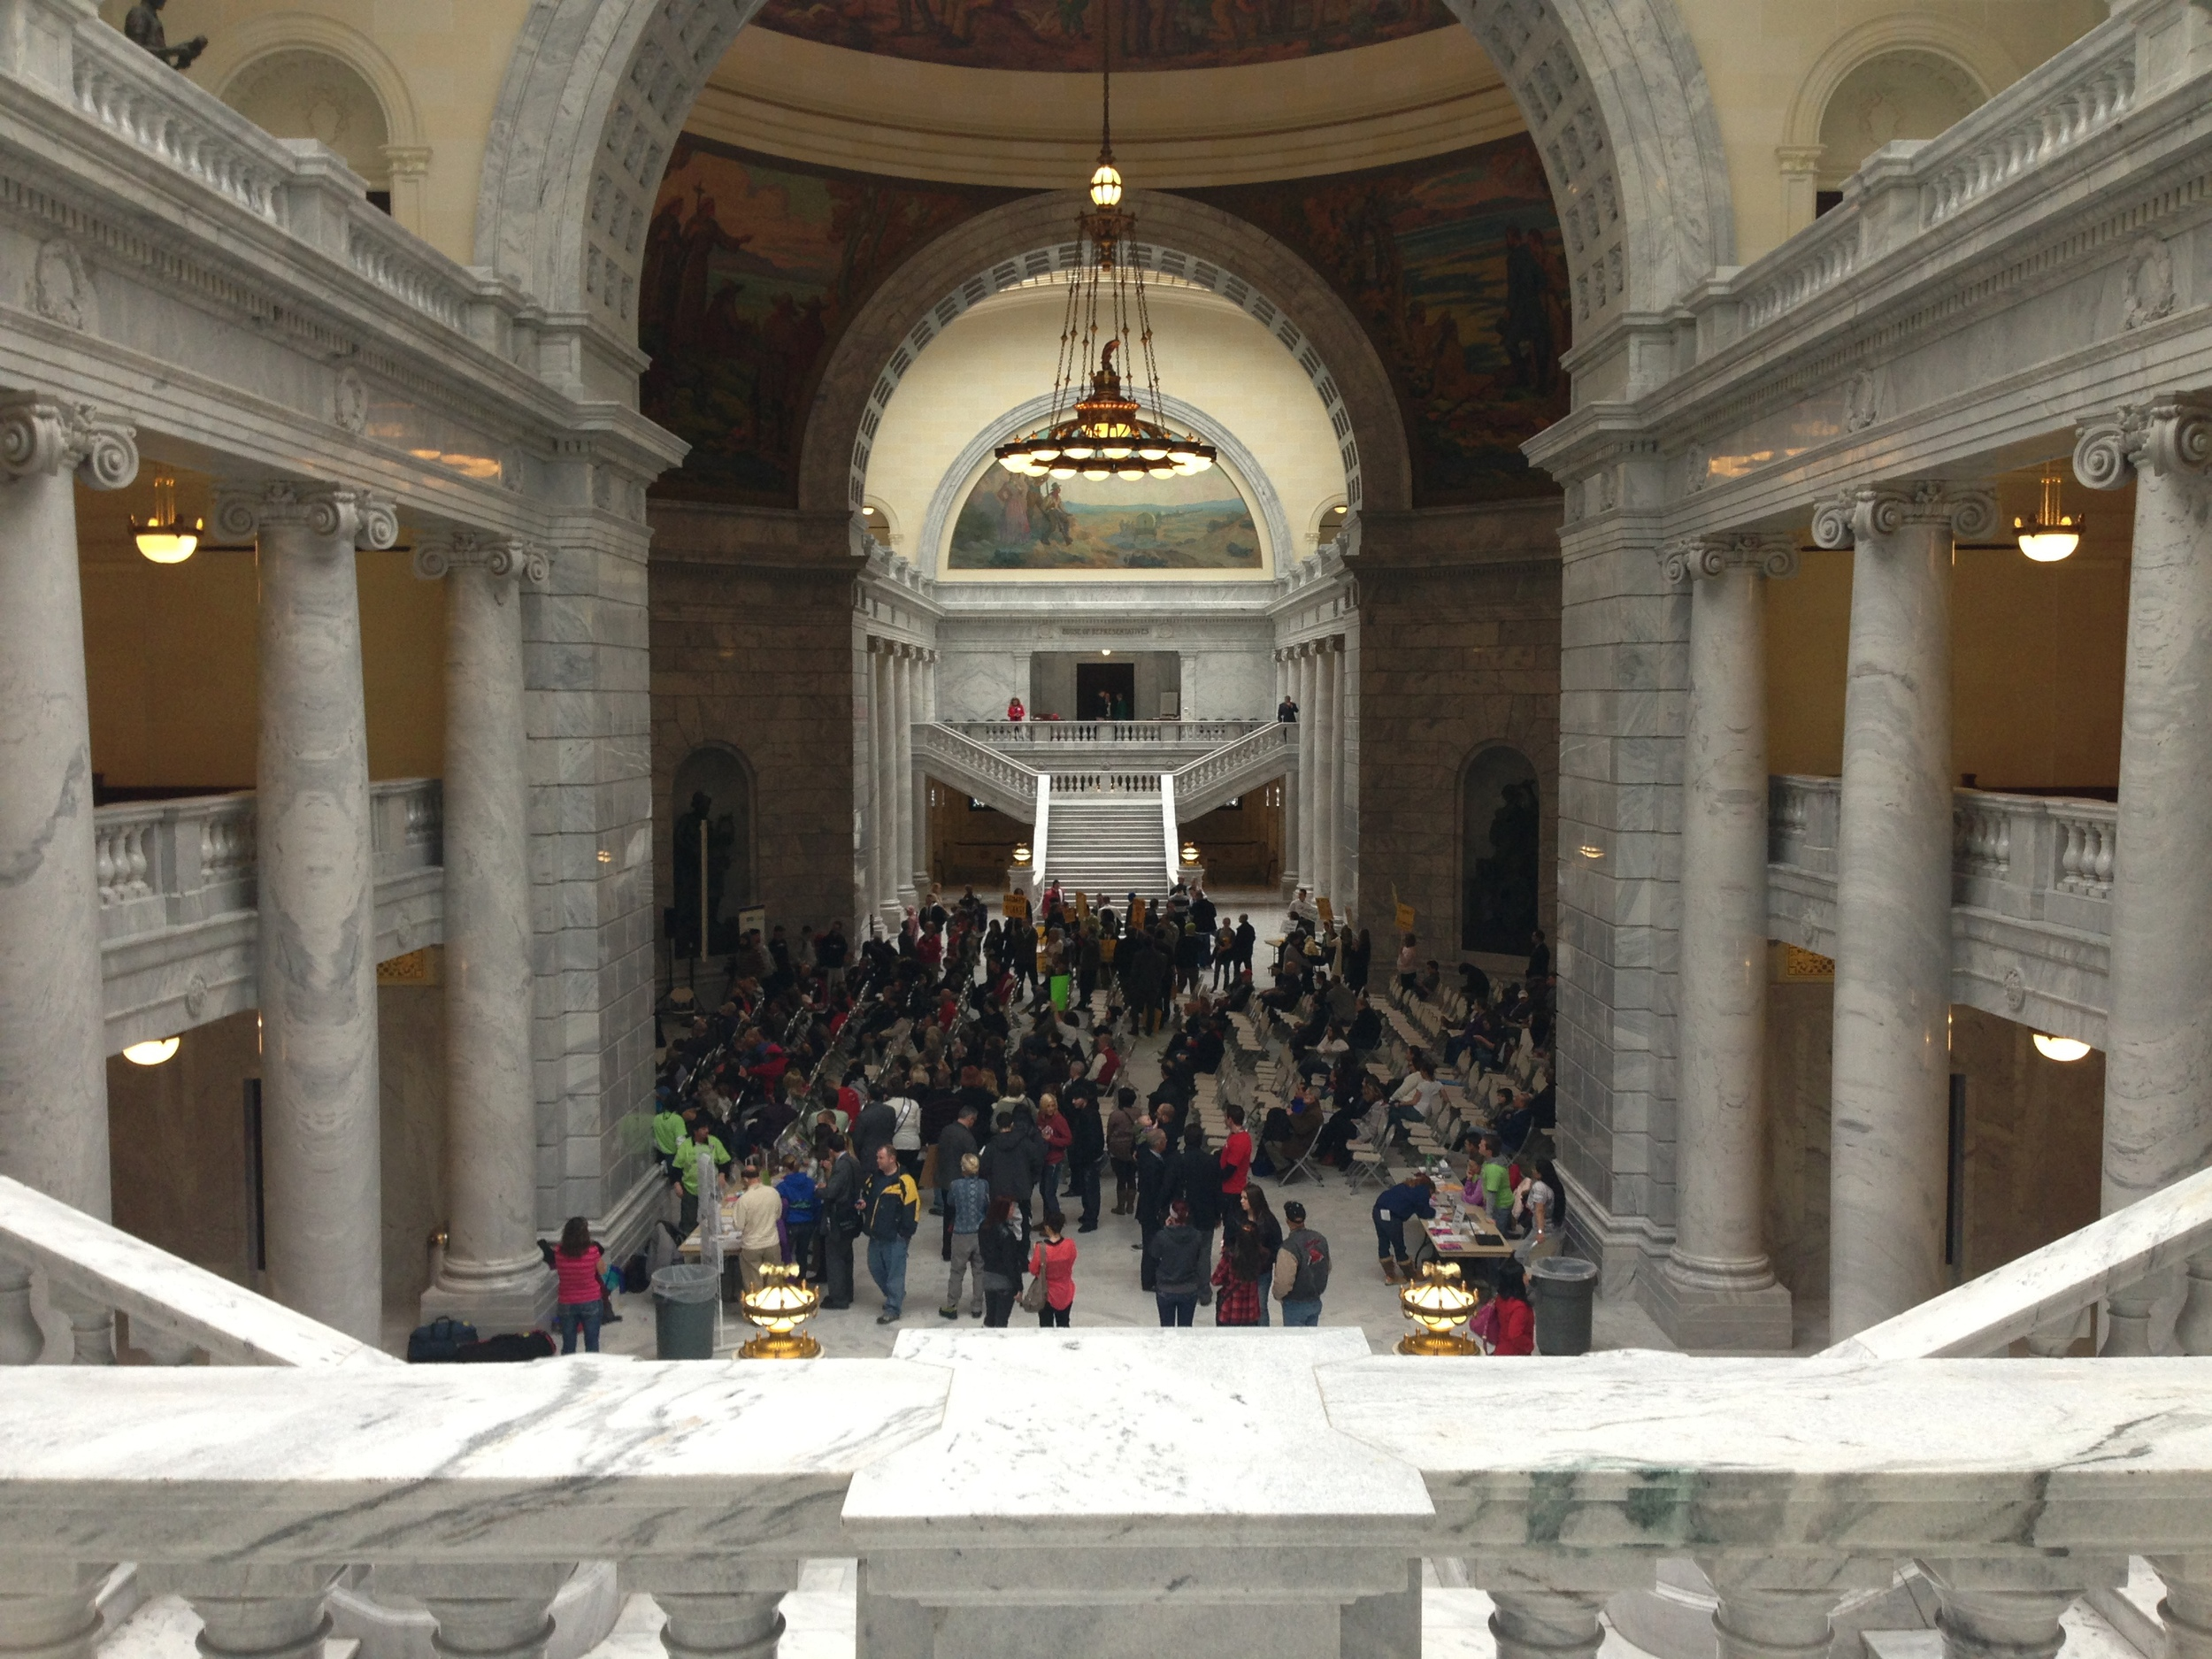 Bill would require pollsters to disclose who is paying for survey